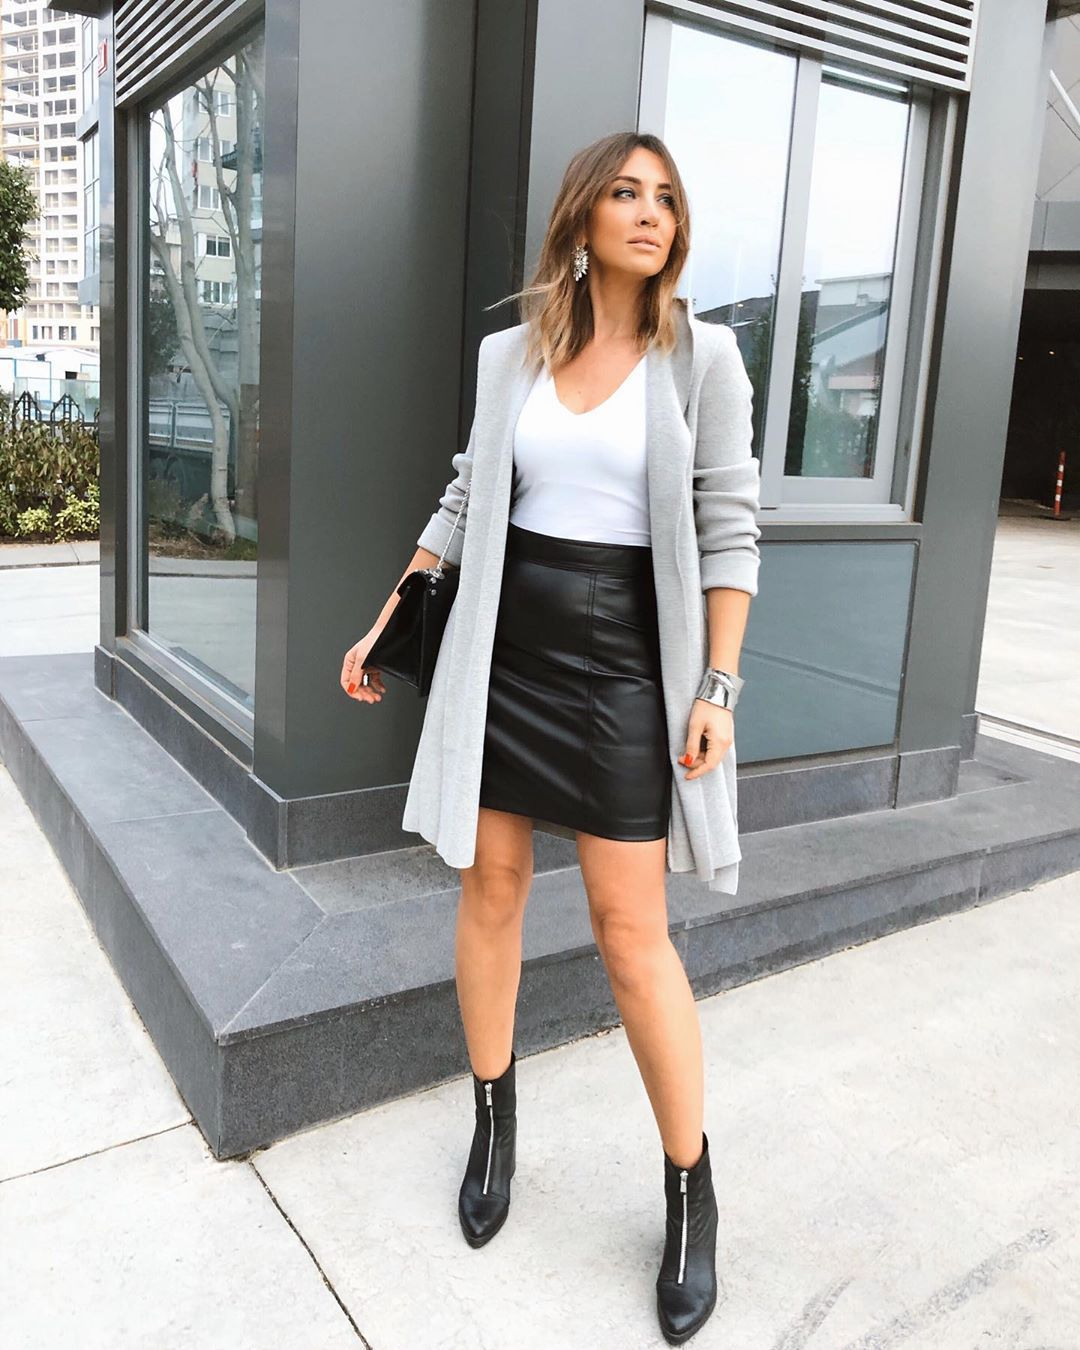 skirt black skirt leather skirt ankle boots black boots white t-shirt cardigan black bag